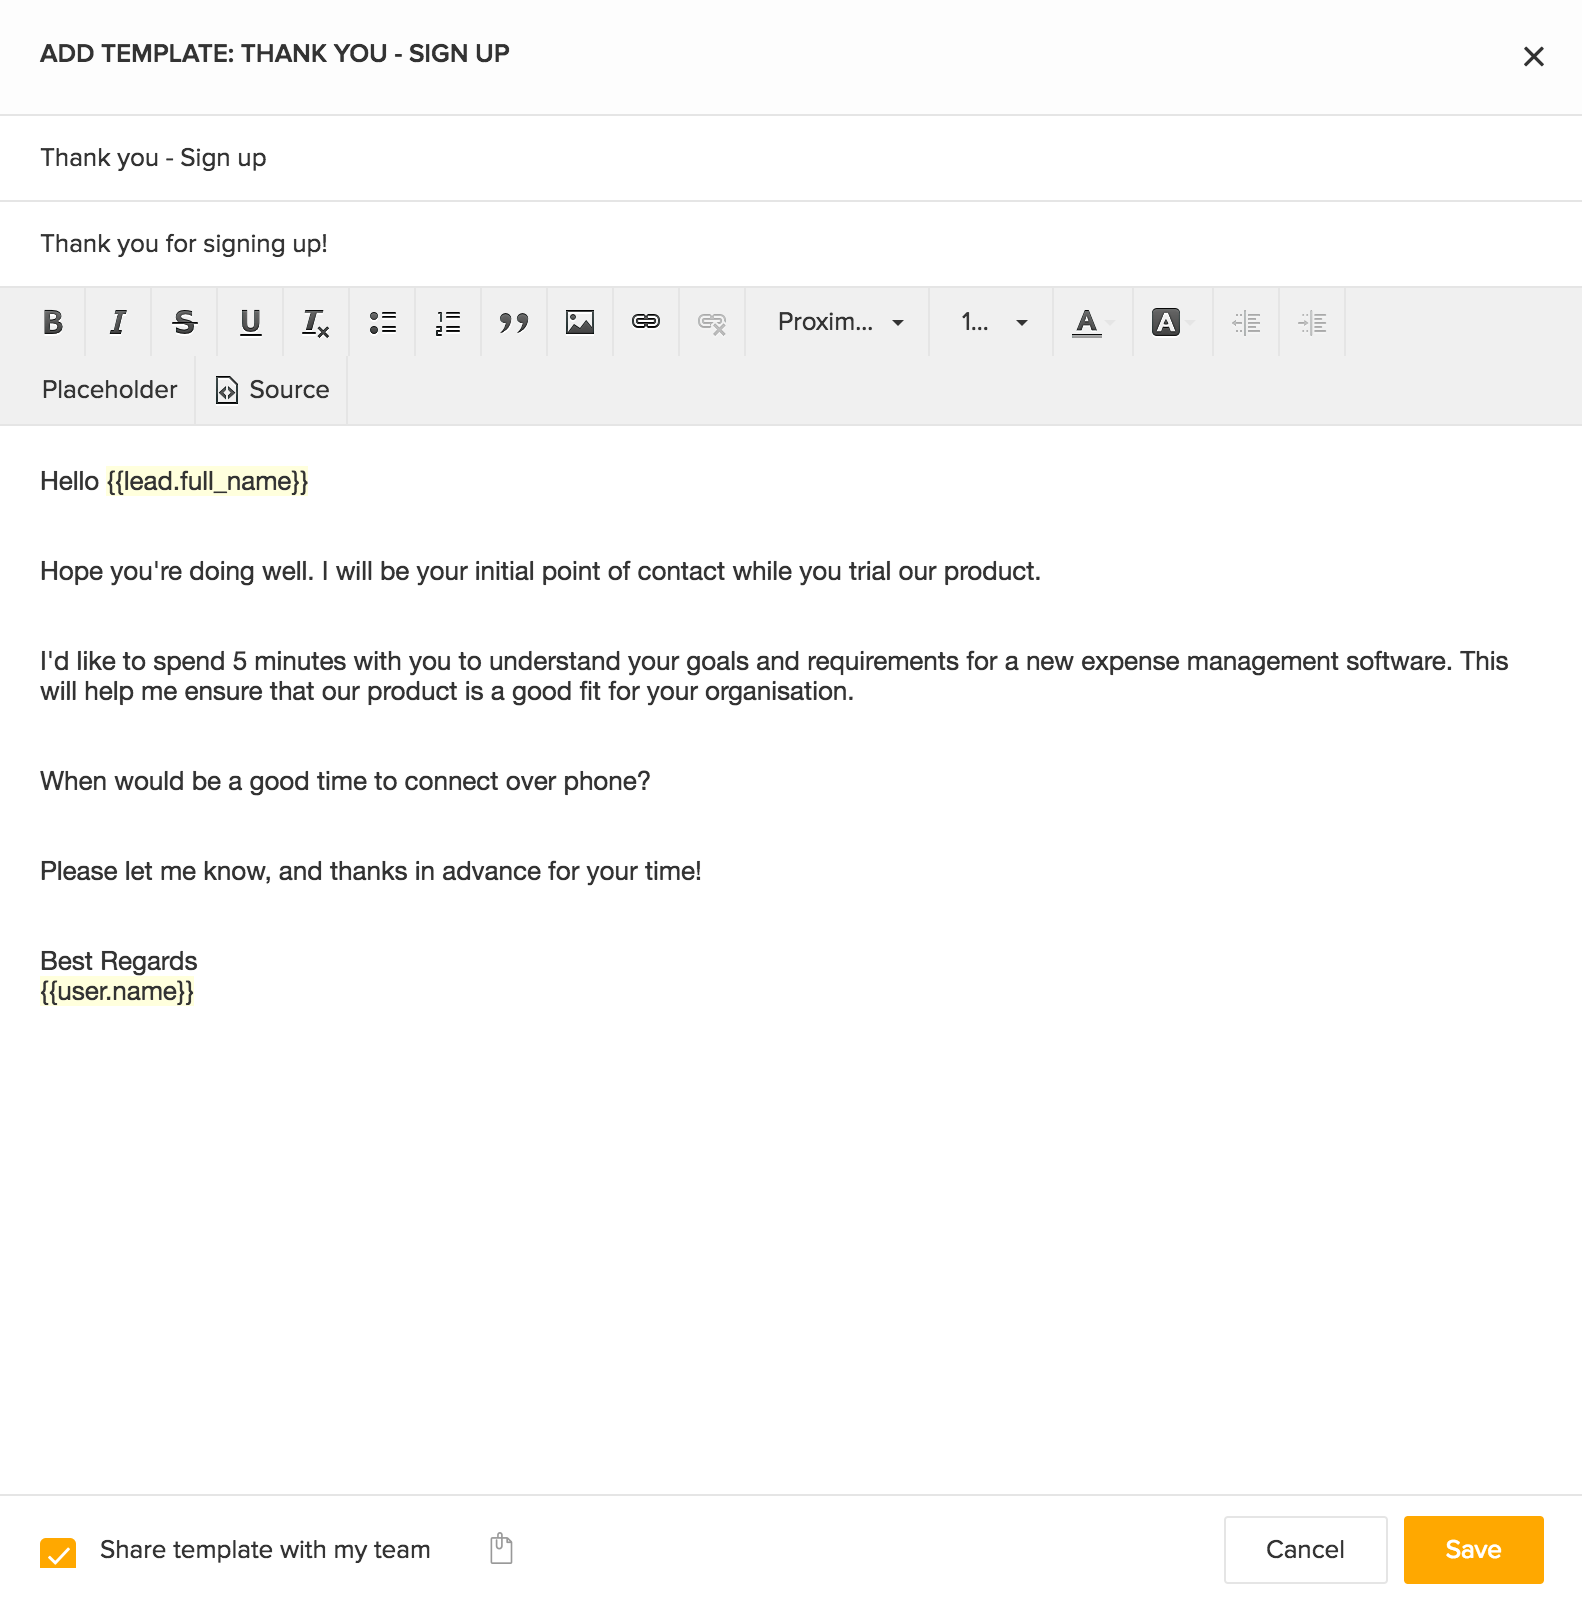 Beautiful You Can Find The Email Templates Under The Templates Drop Down In The  Compose Window. You Can Start Using These Templates While Sending Emails To  Your Leads ... Throughout Point Of Contact Template